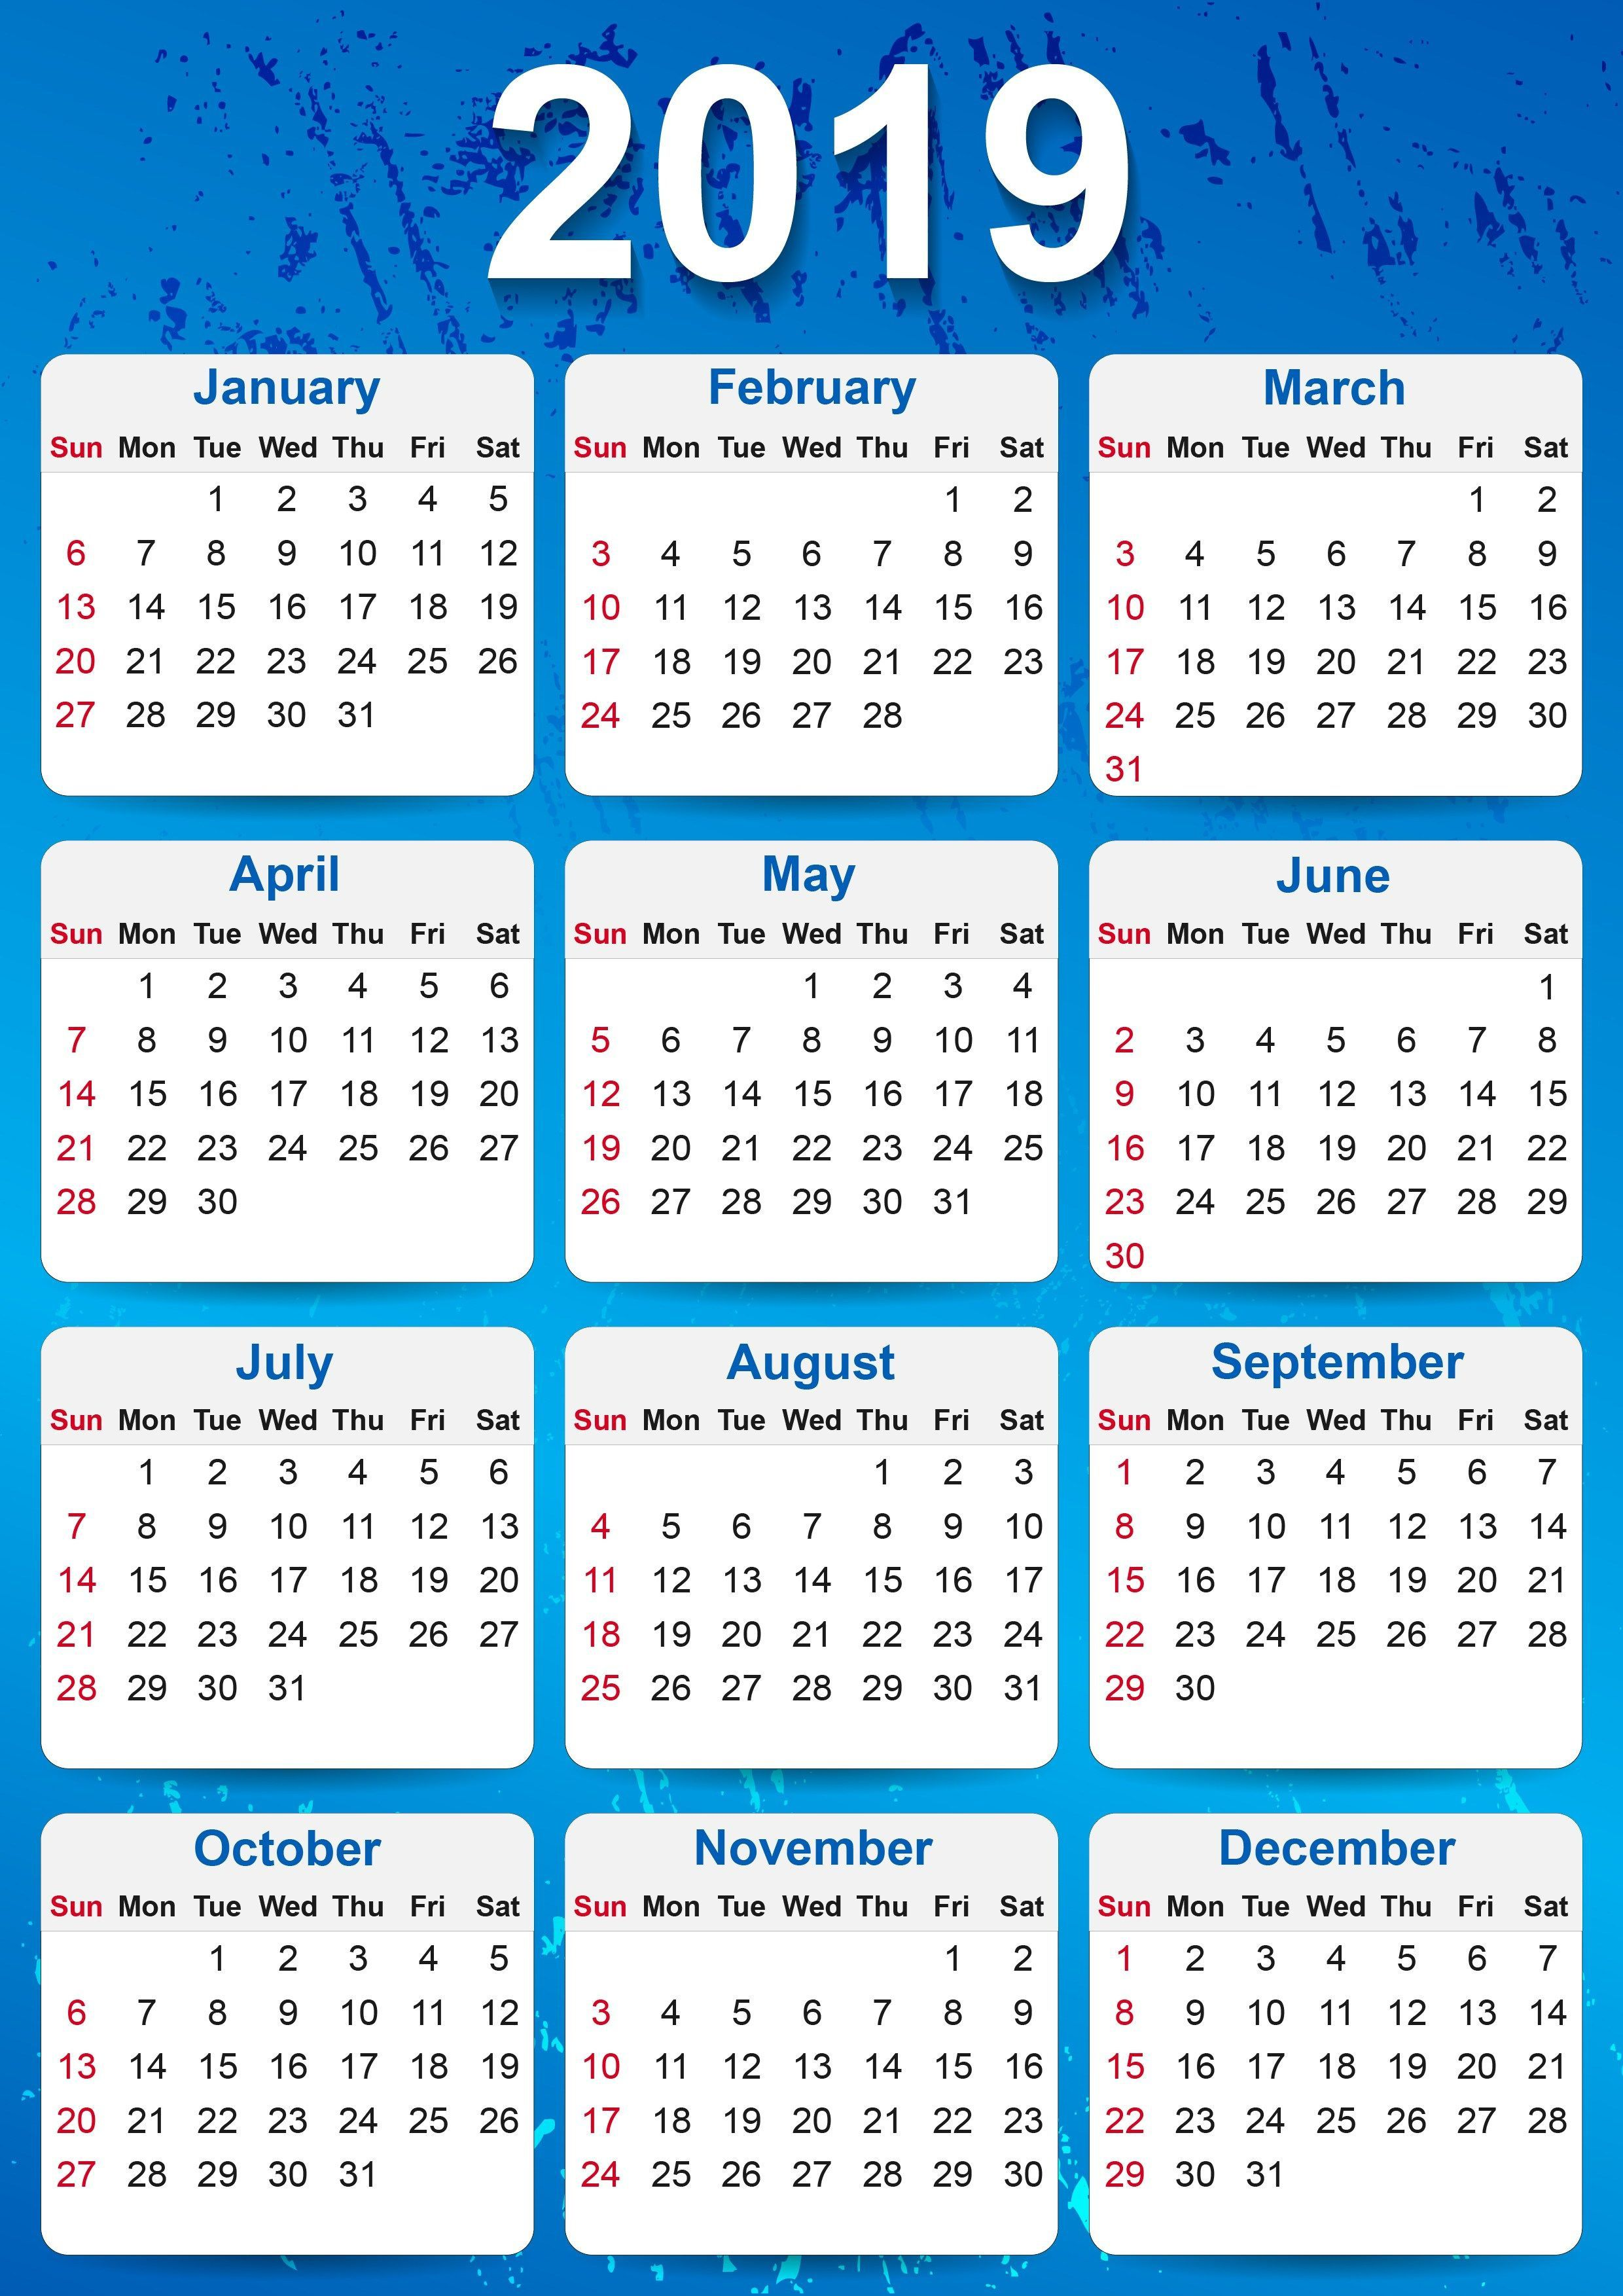 000 Staggering Calendar Template Free Download Concept  2020 Powerpoint Table Design 2019 MalaysiaFull